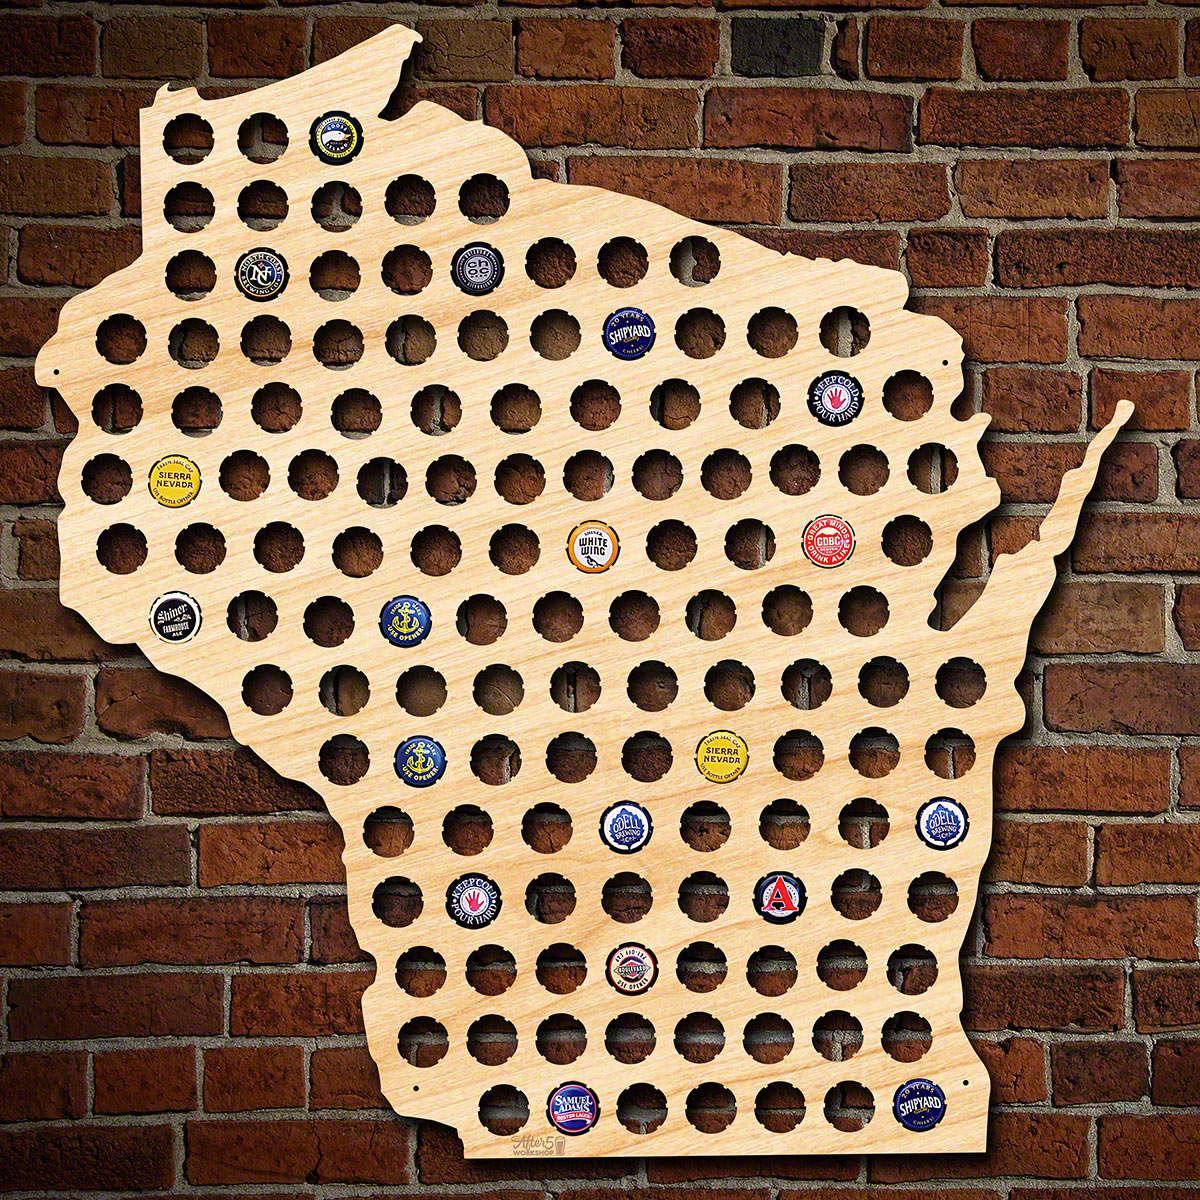 Giant-XL-Wisconsin-Beer-Cap-Map